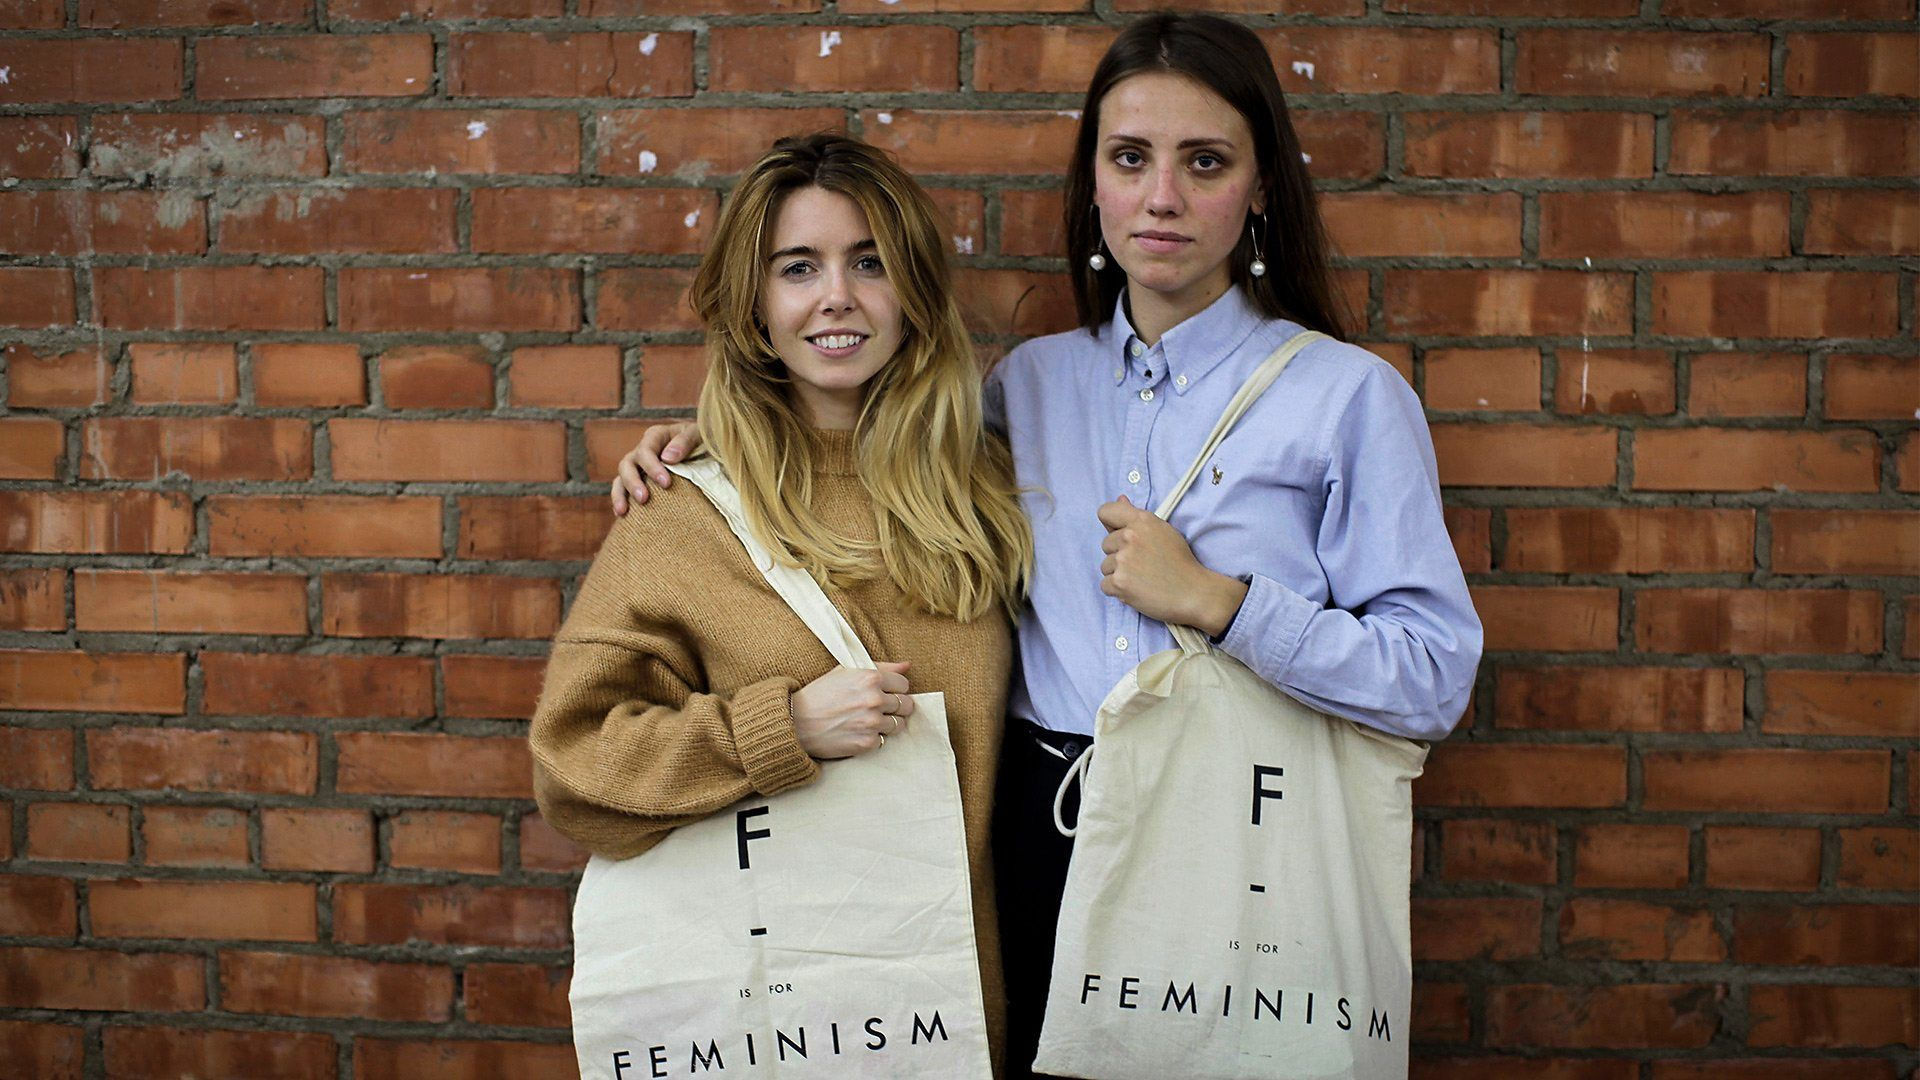 Stacey Dooley Investigates — s07 special-8 — Russia's War on Women